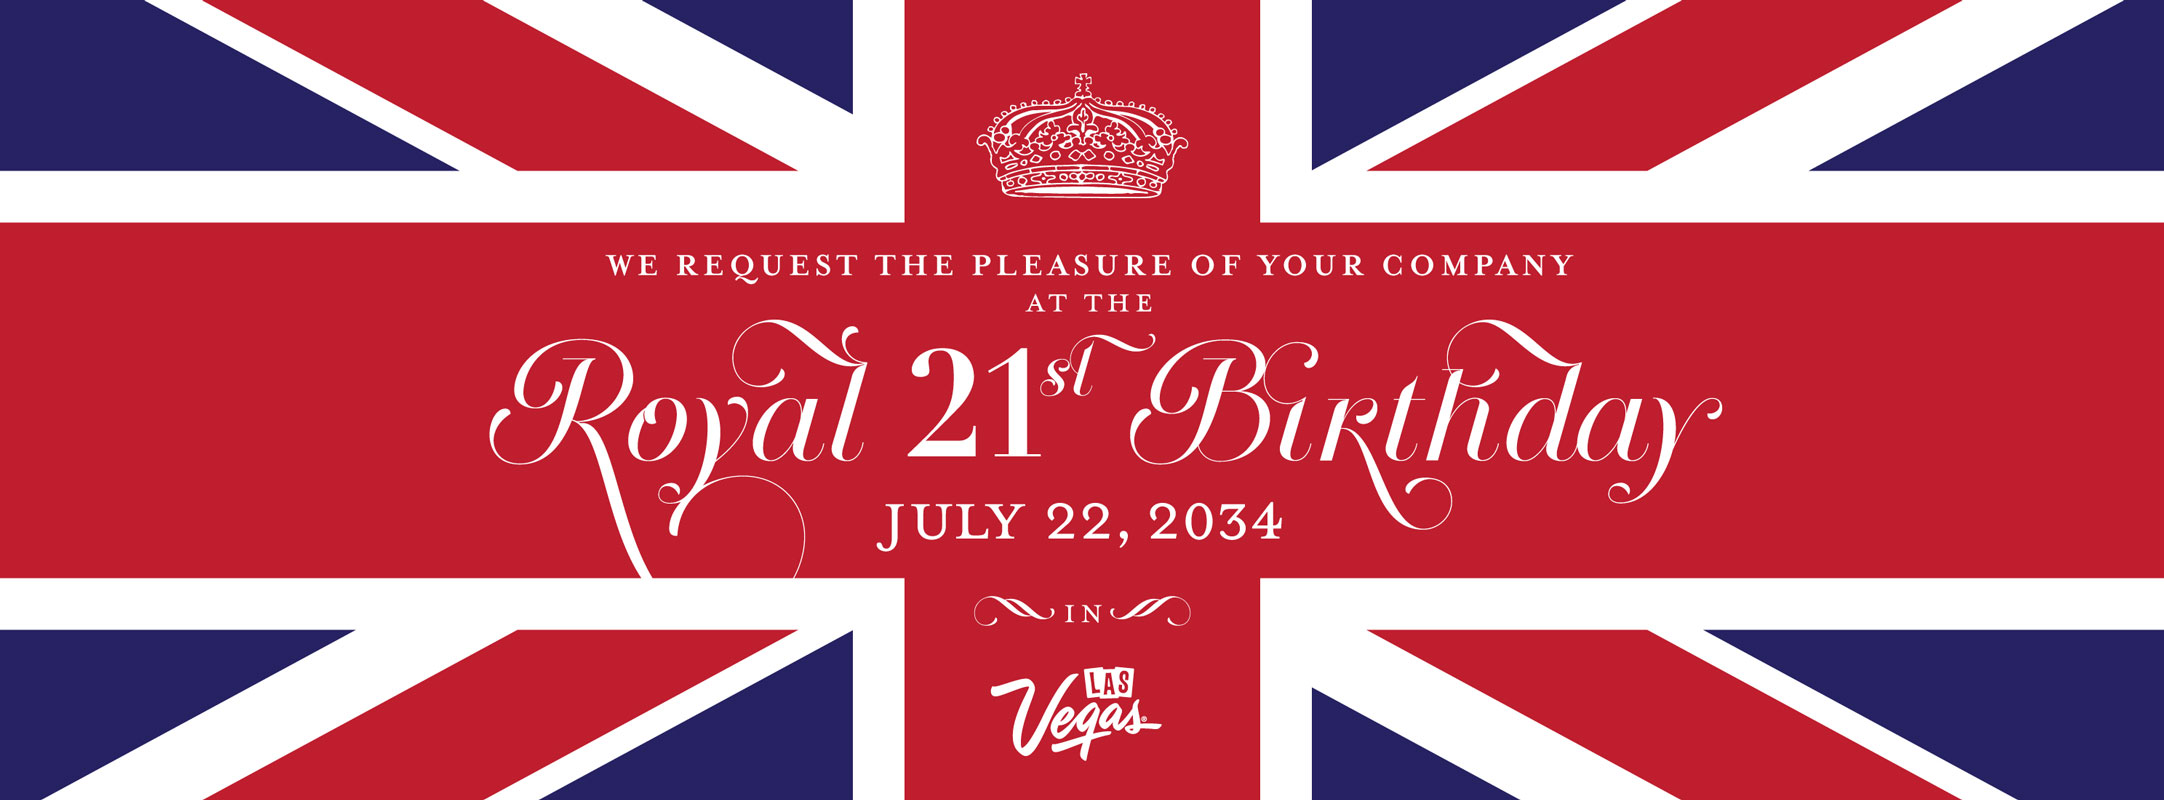 NEW! Las Vegas Plans a Party Fit For a Future King 08/05/2013